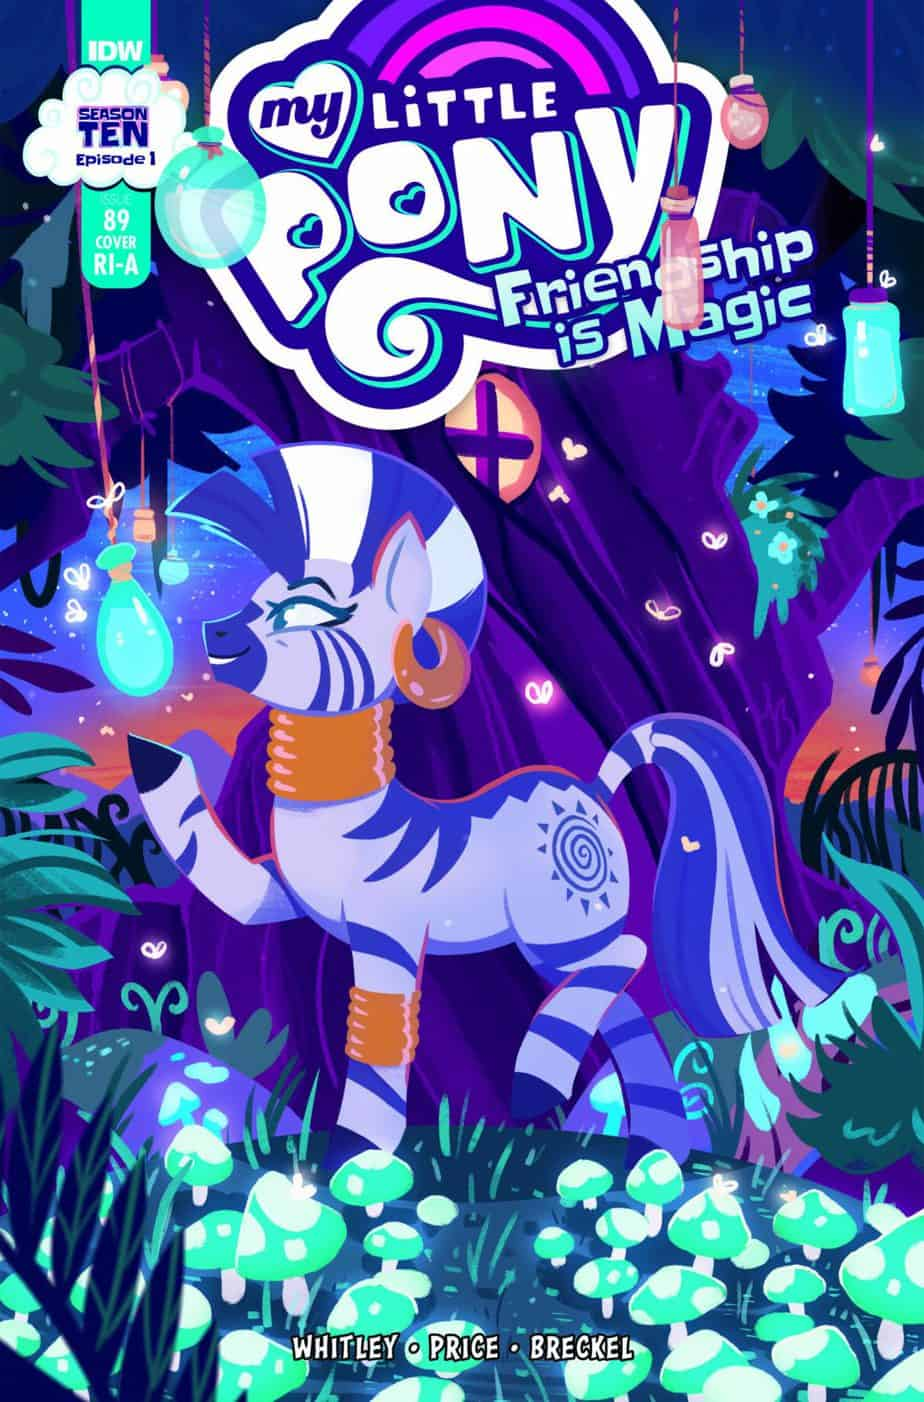 My Little Pony: Friendship is Magic #89 - Retailer Incentive Cover A